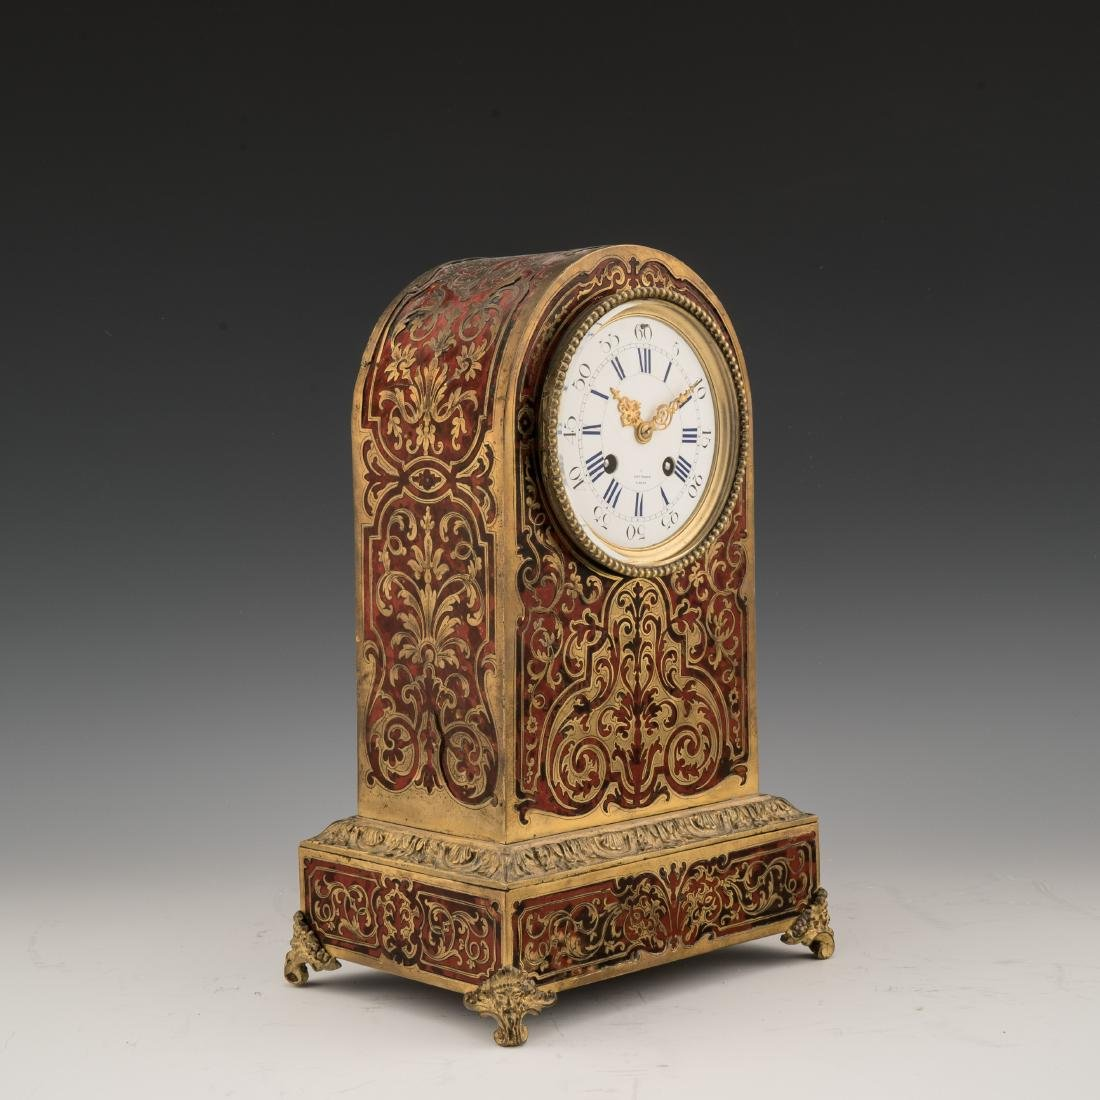 FRENCH BOULLE MARQUETRY CLOCK, HENRY MARC, C. 1850